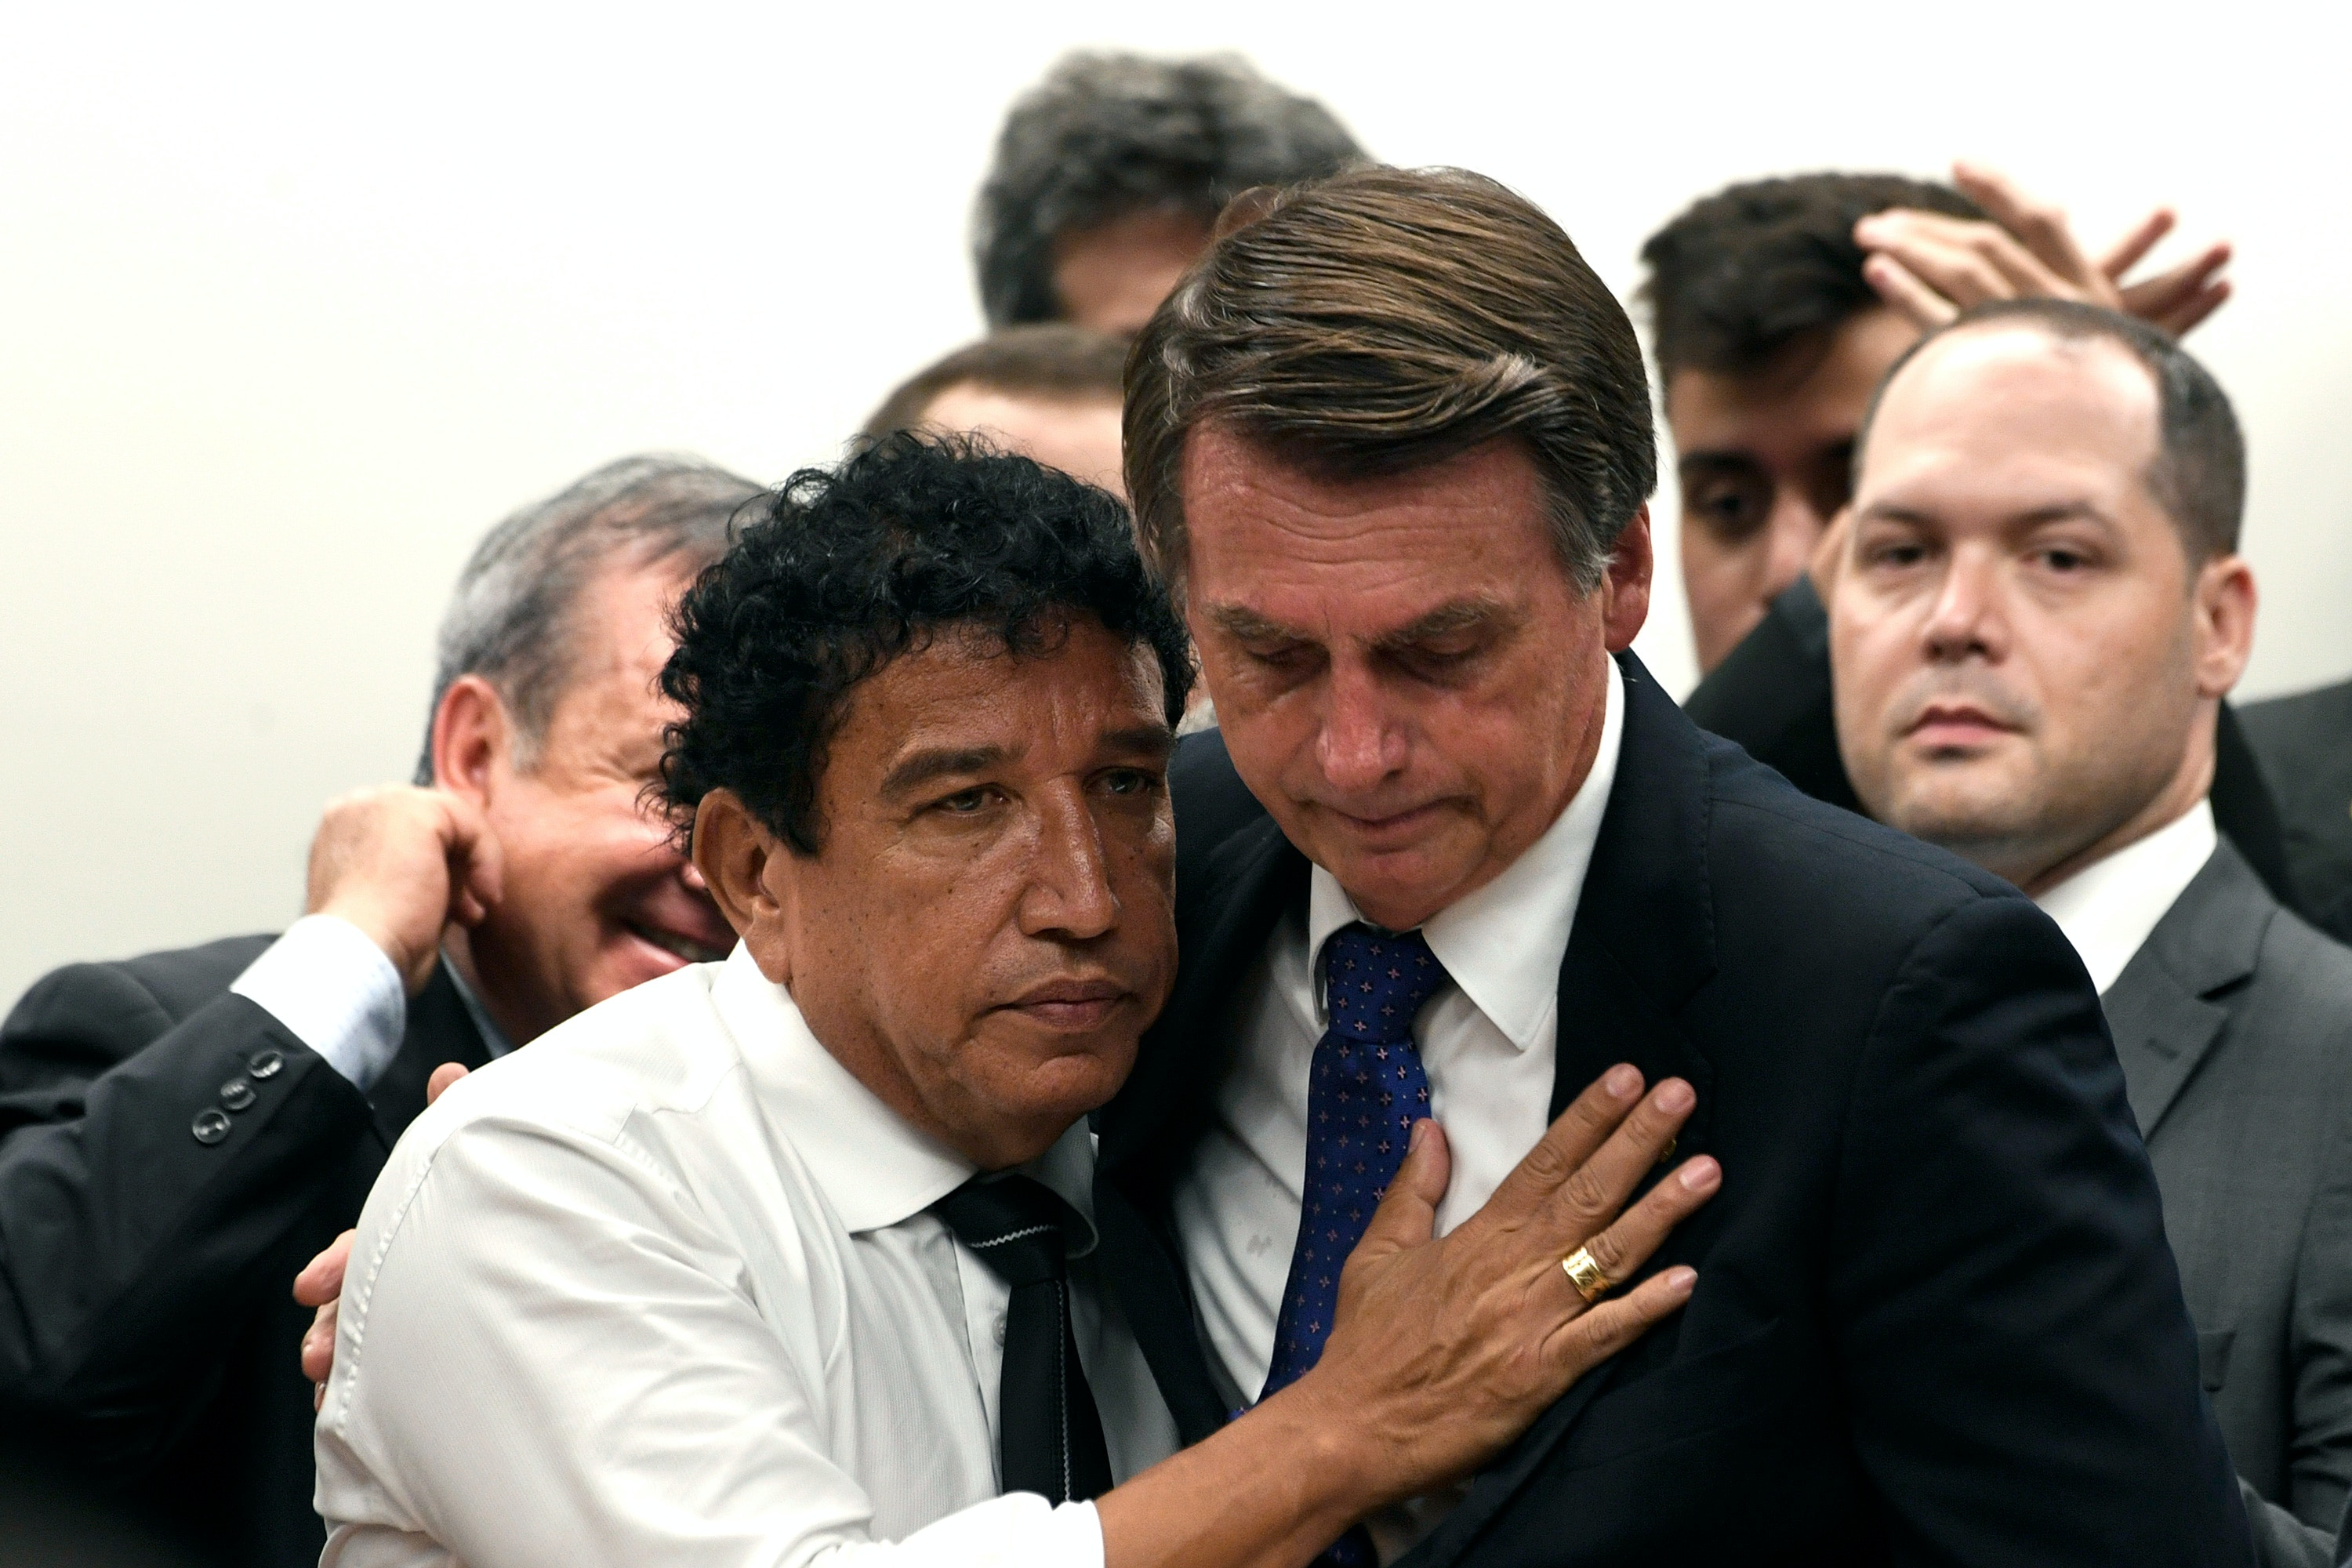 Jair Bolsonaro accompanied by Senator Magno Malta during a filming ceremony in the PSL party on Wednesday, March 7, held in the Chamber of Deputies Photo: Mateus Bonomi / AGIF - Brasilia - 07/03/2018 - Filiation of Jair Bolsonaro in PSL (via AP)